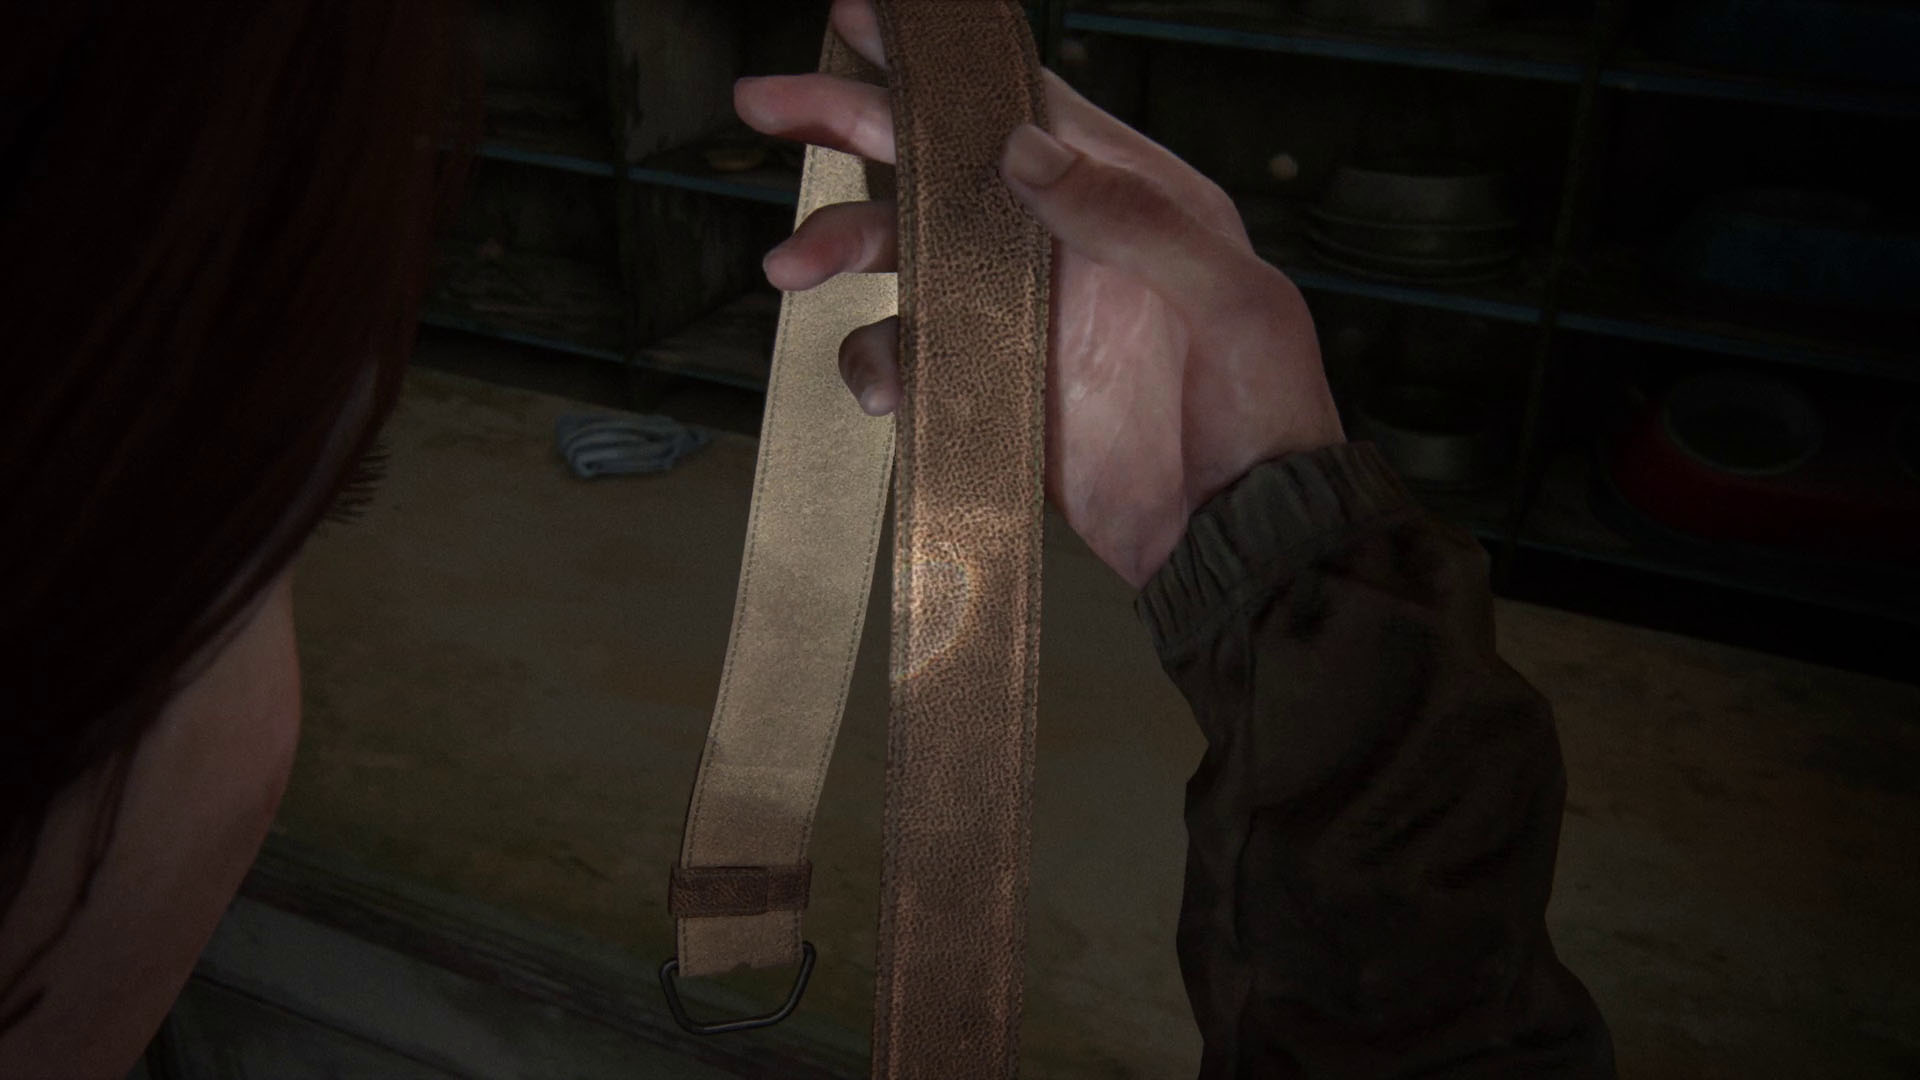 The Long Gun Holster in The Last of Us Part 2